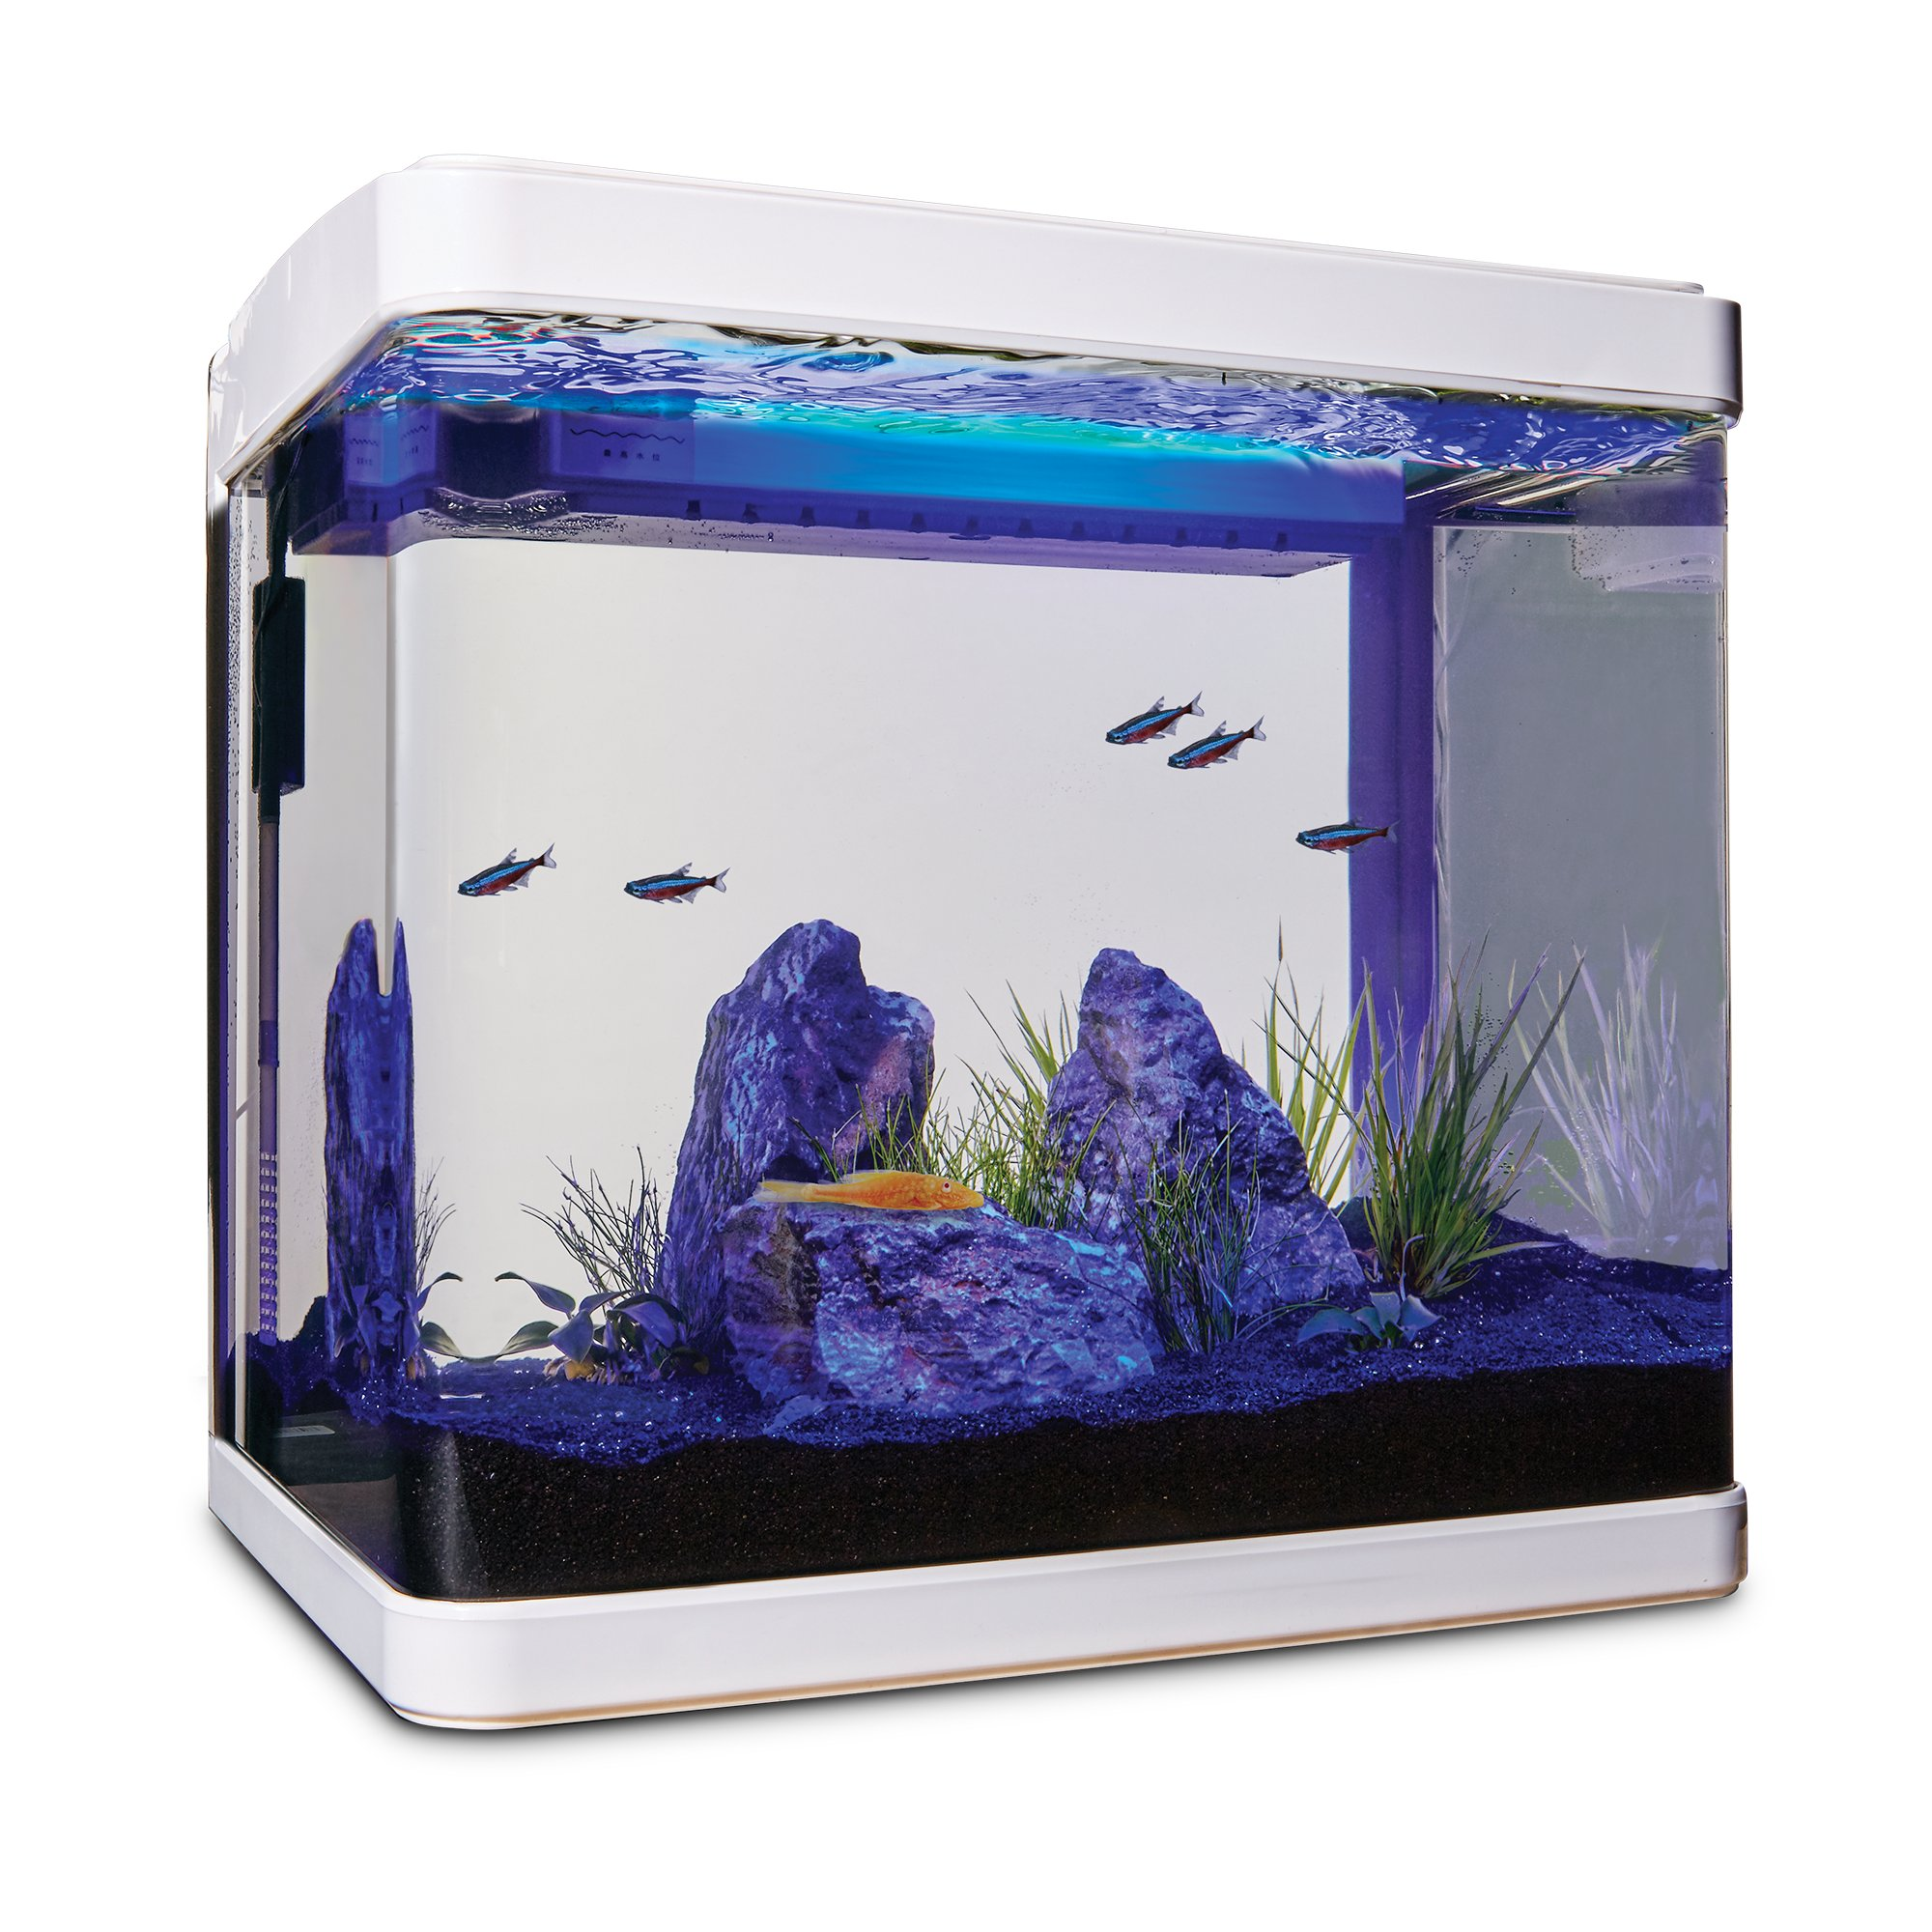 Imagitarium freshwater cube aquarium kit petco for Betta fish tanks petco